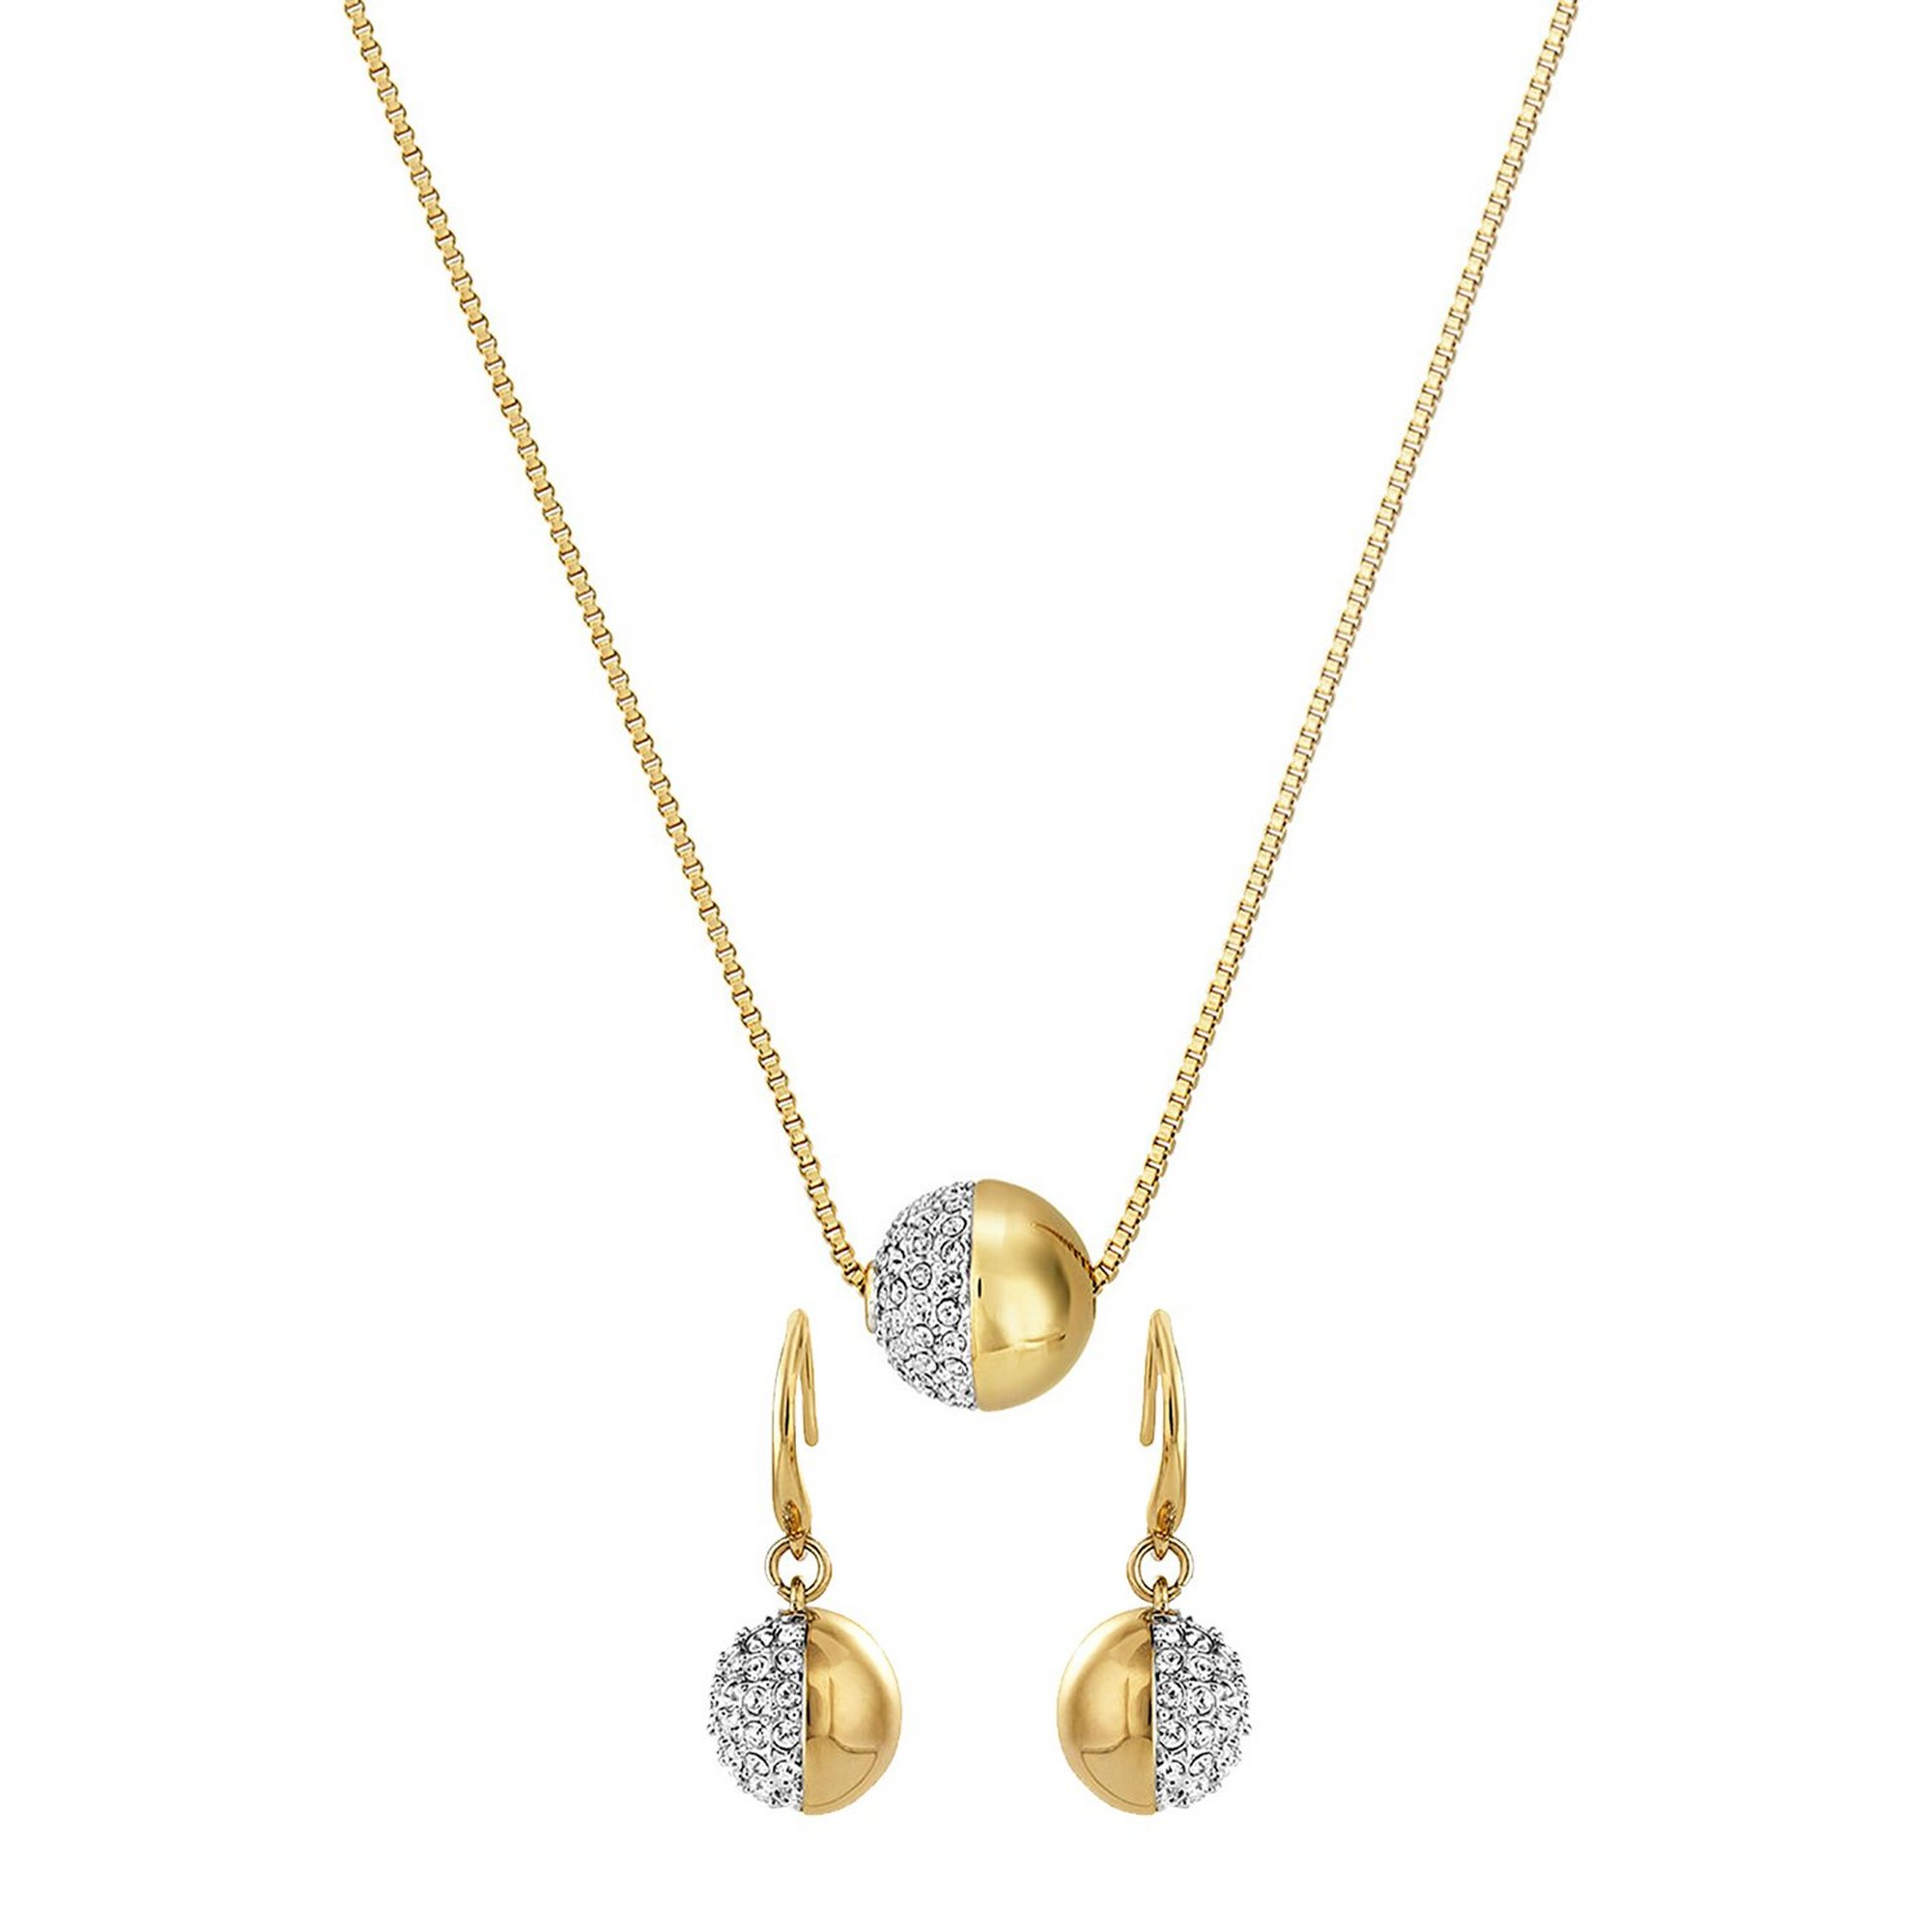 Image of Buckley London Greenwich Pendant and Earring Set